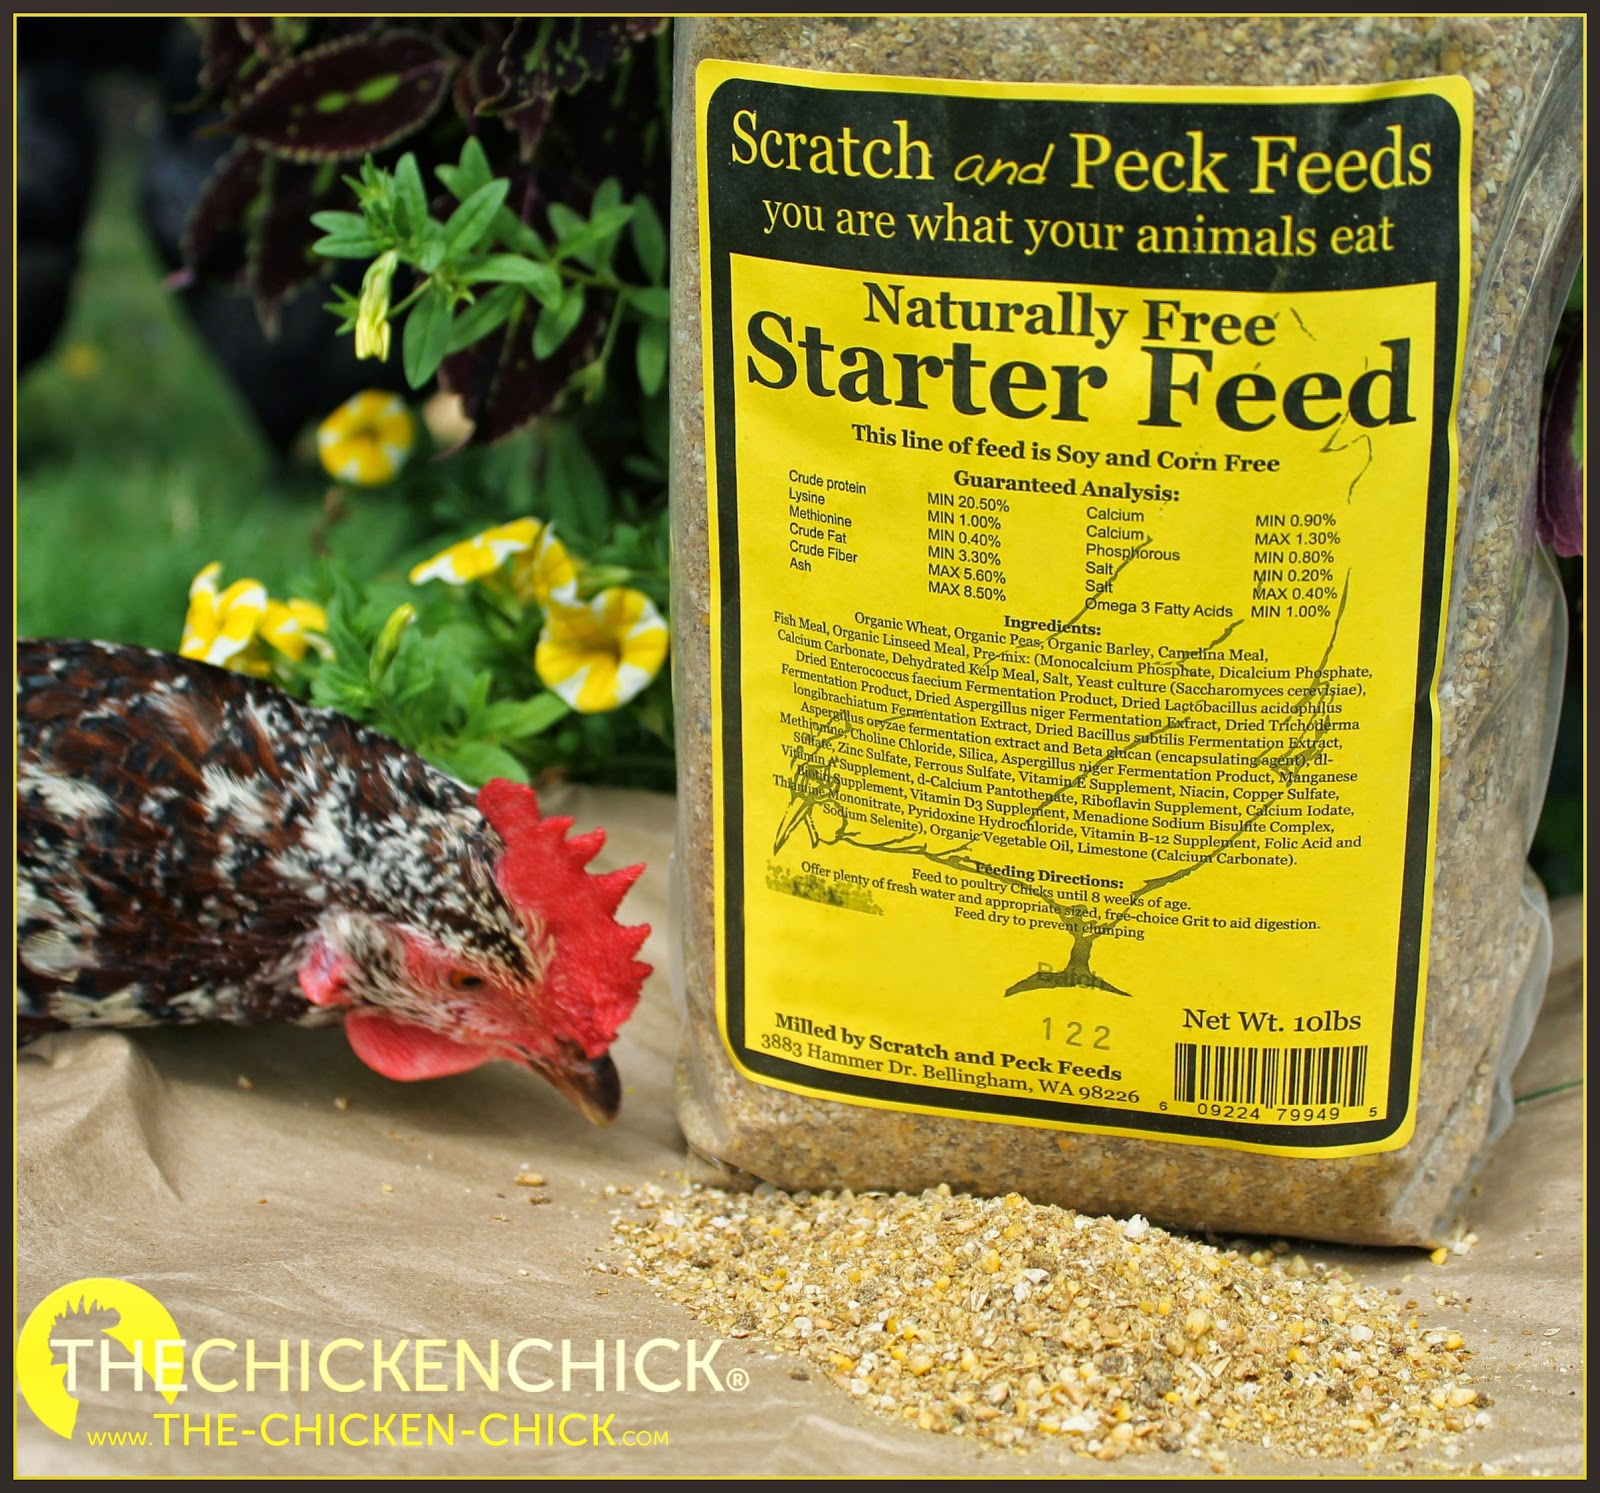 Scratch & Peck Feeds Giveaway at The Chicken Chick®